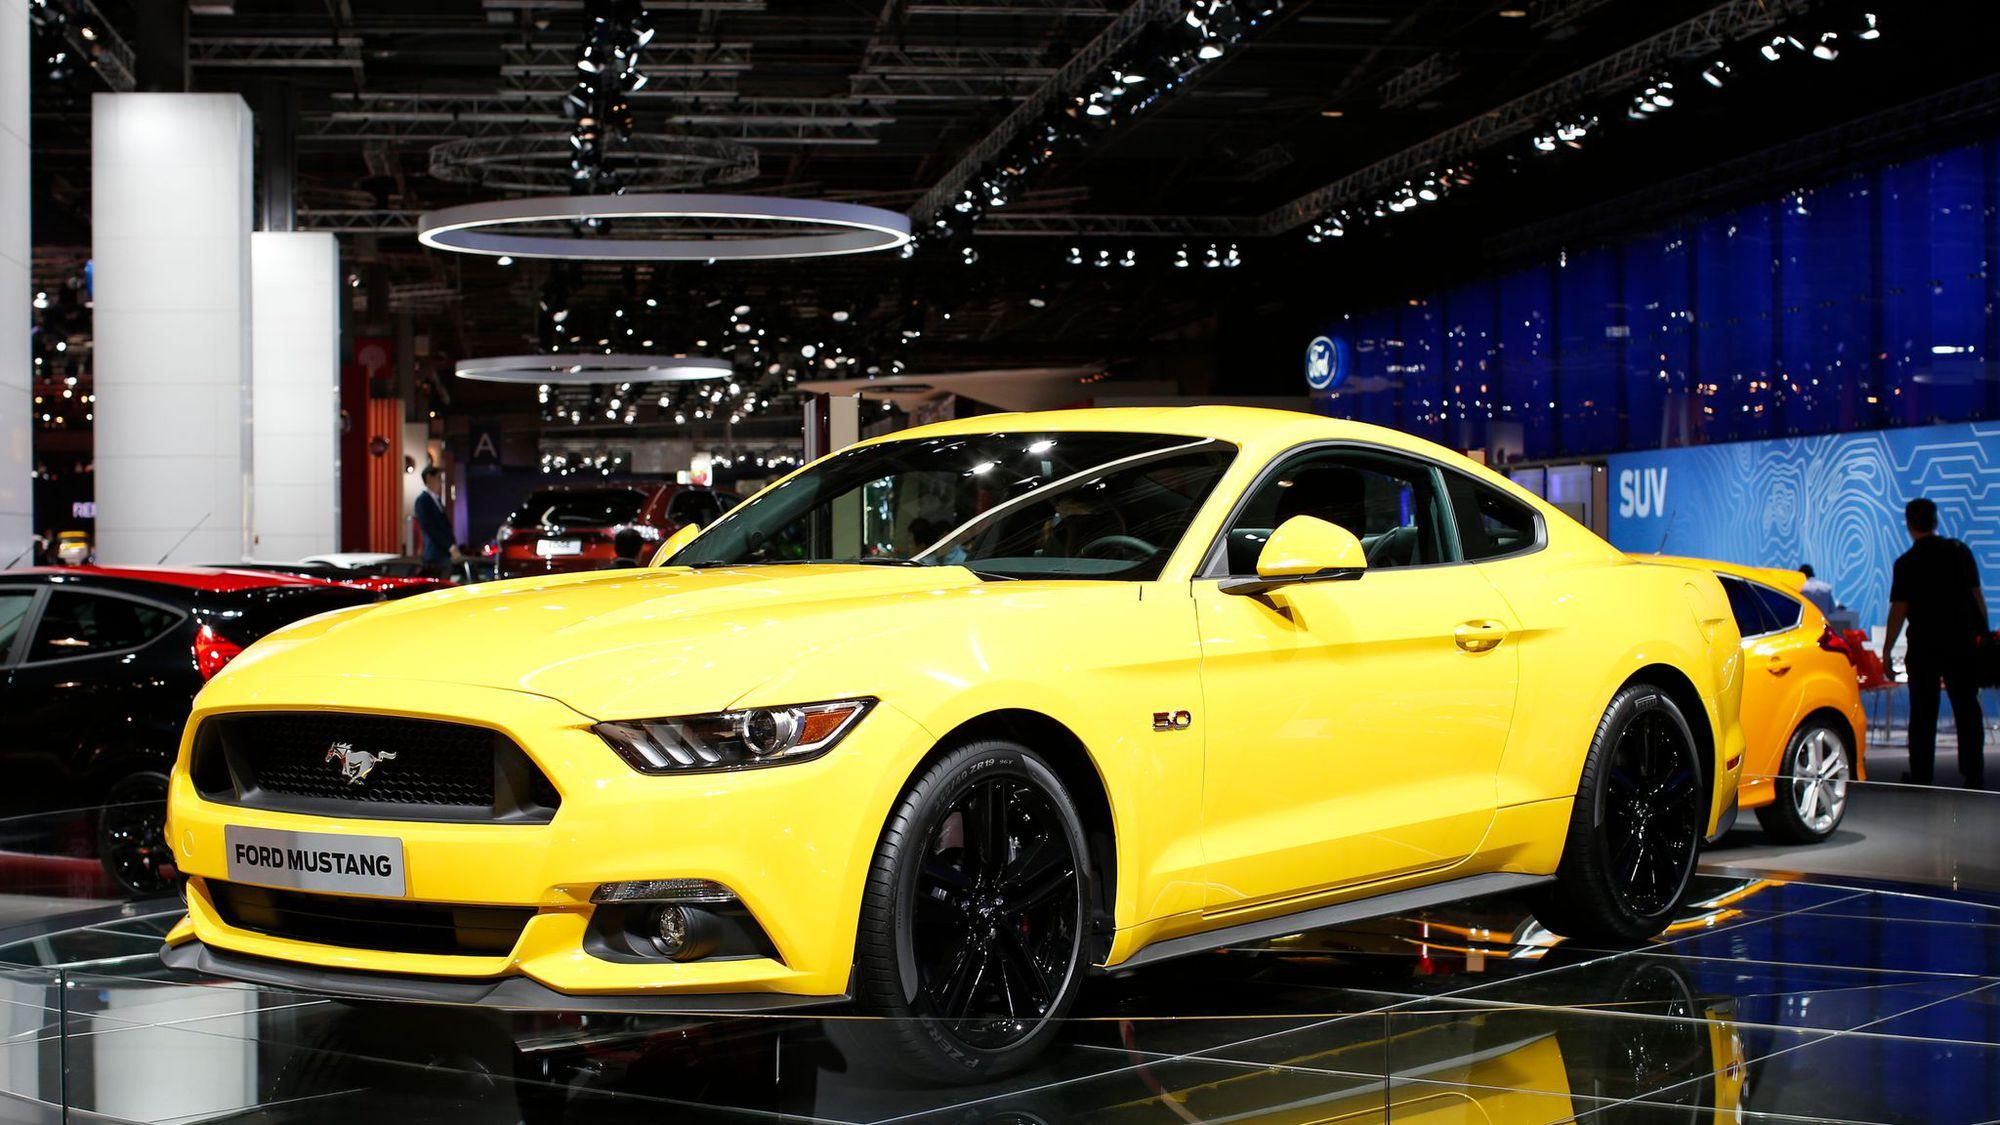 ford mustang jaune voiture maroc